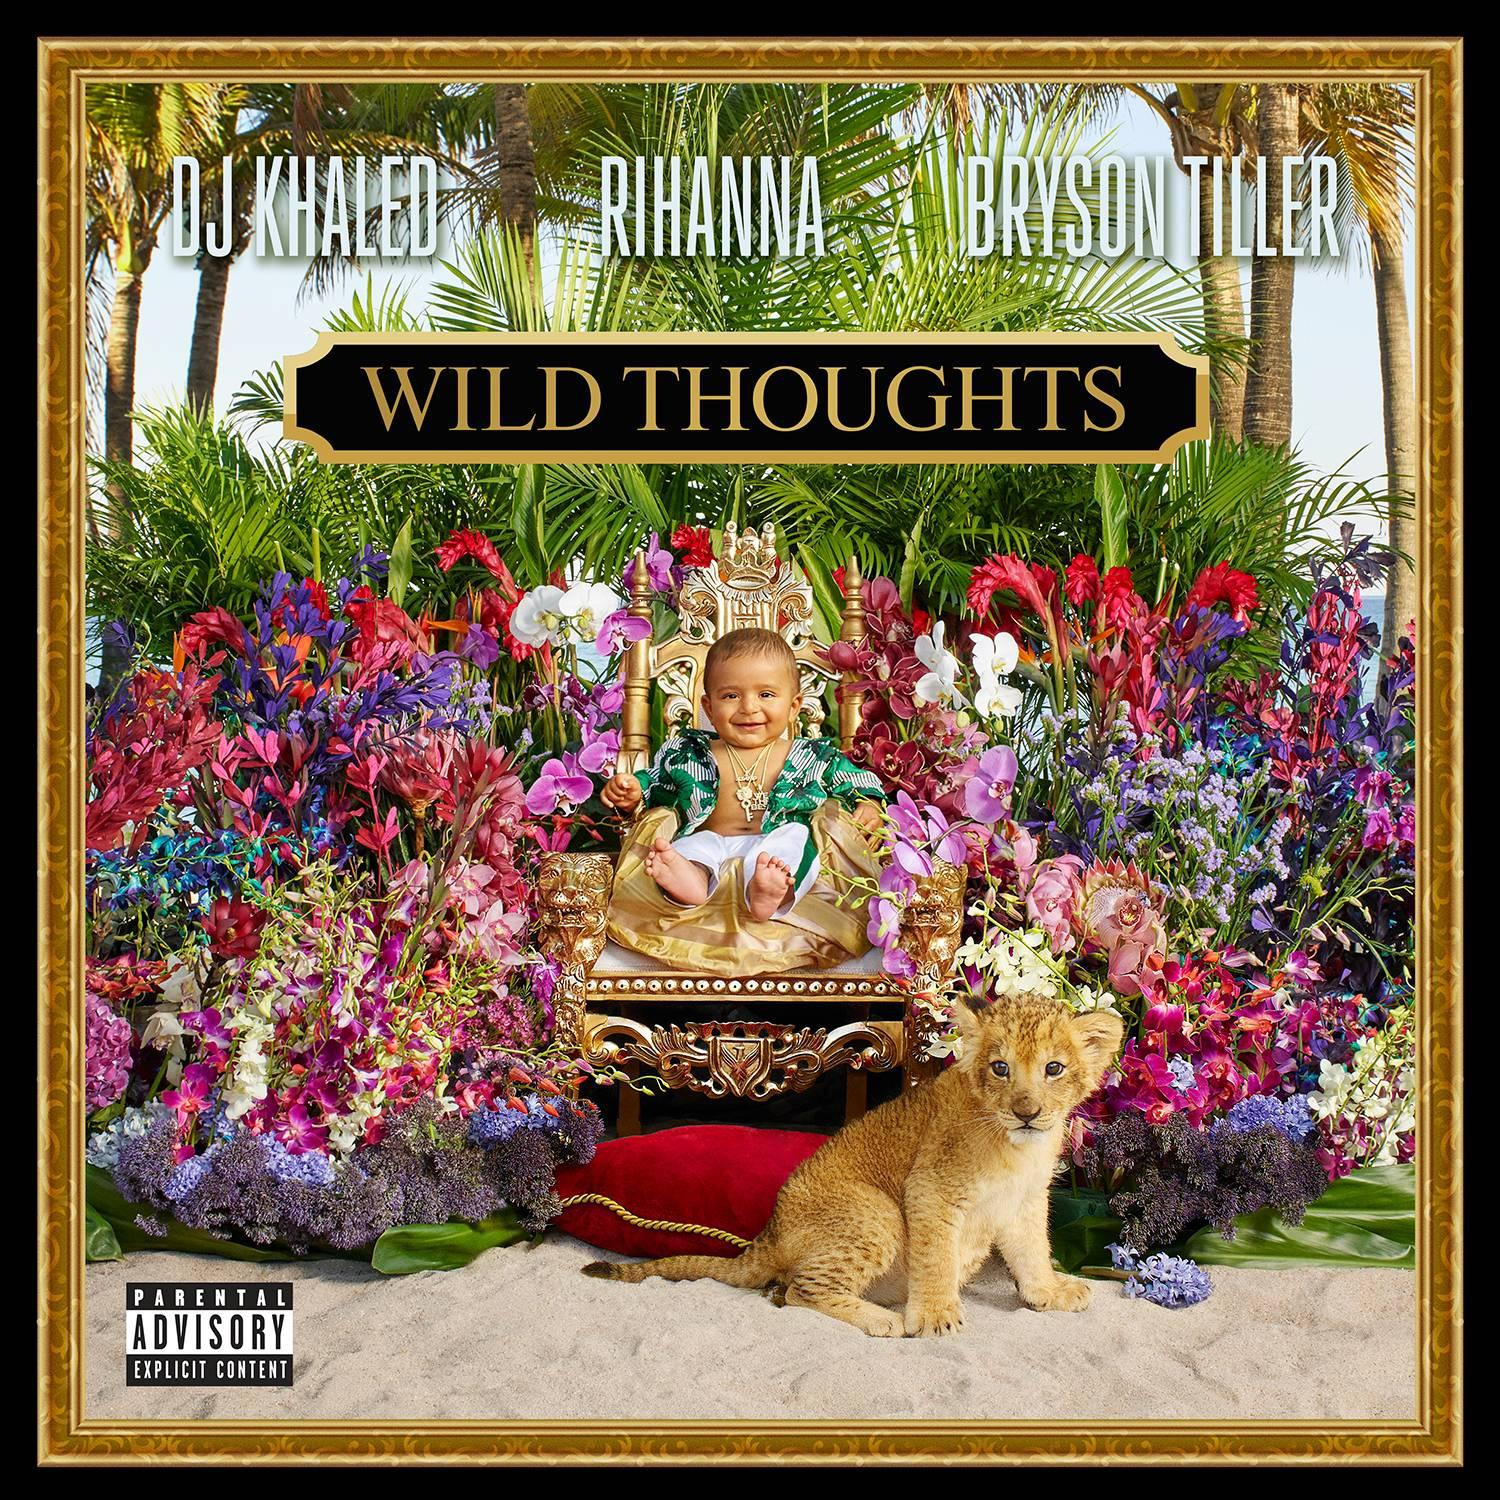 DJ Khaled - Wild Thoughts (Ft. Rihanna & Bryson Tiller)  日日被淹没的歌曲精选(二)